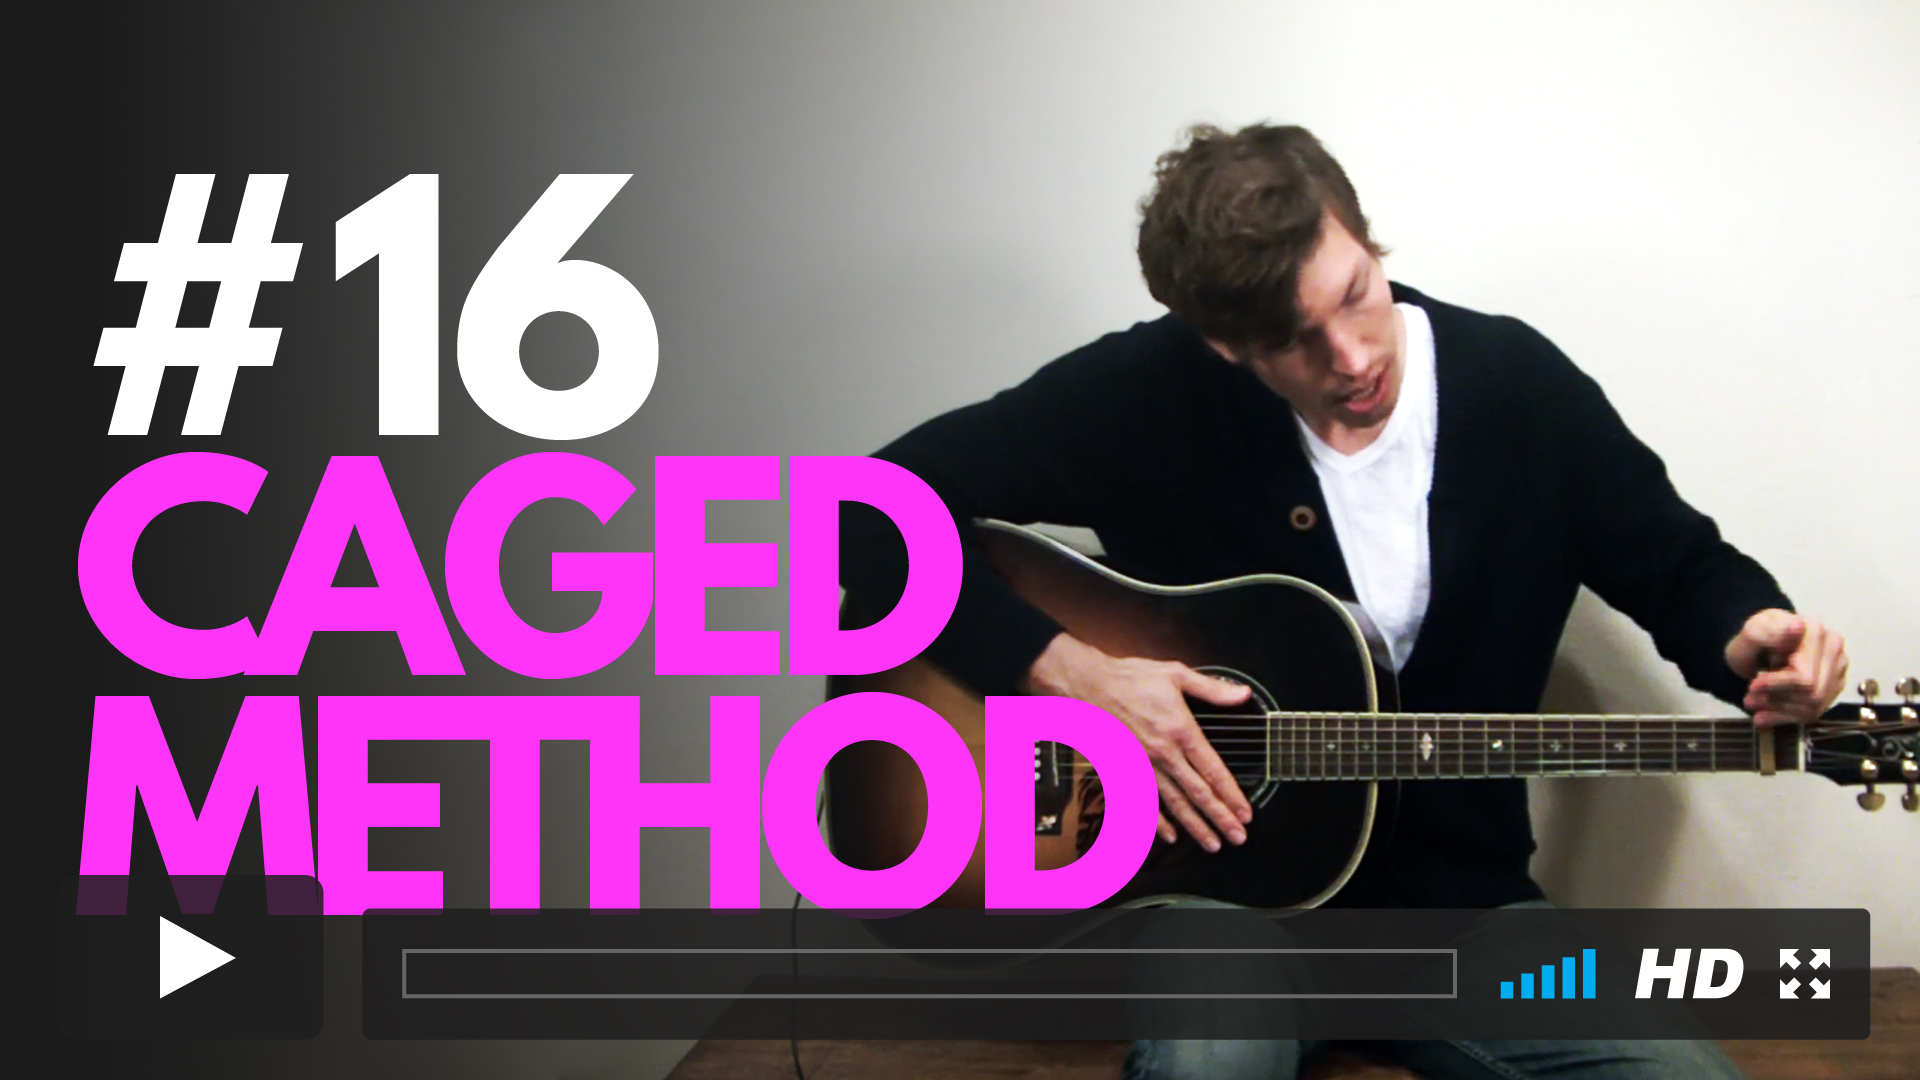 Learn one of the coolest and most powerful tools available to guitarists--CAGED Method. With only a capo, you now have multiple options for playing open chords along the whole length of the neck!